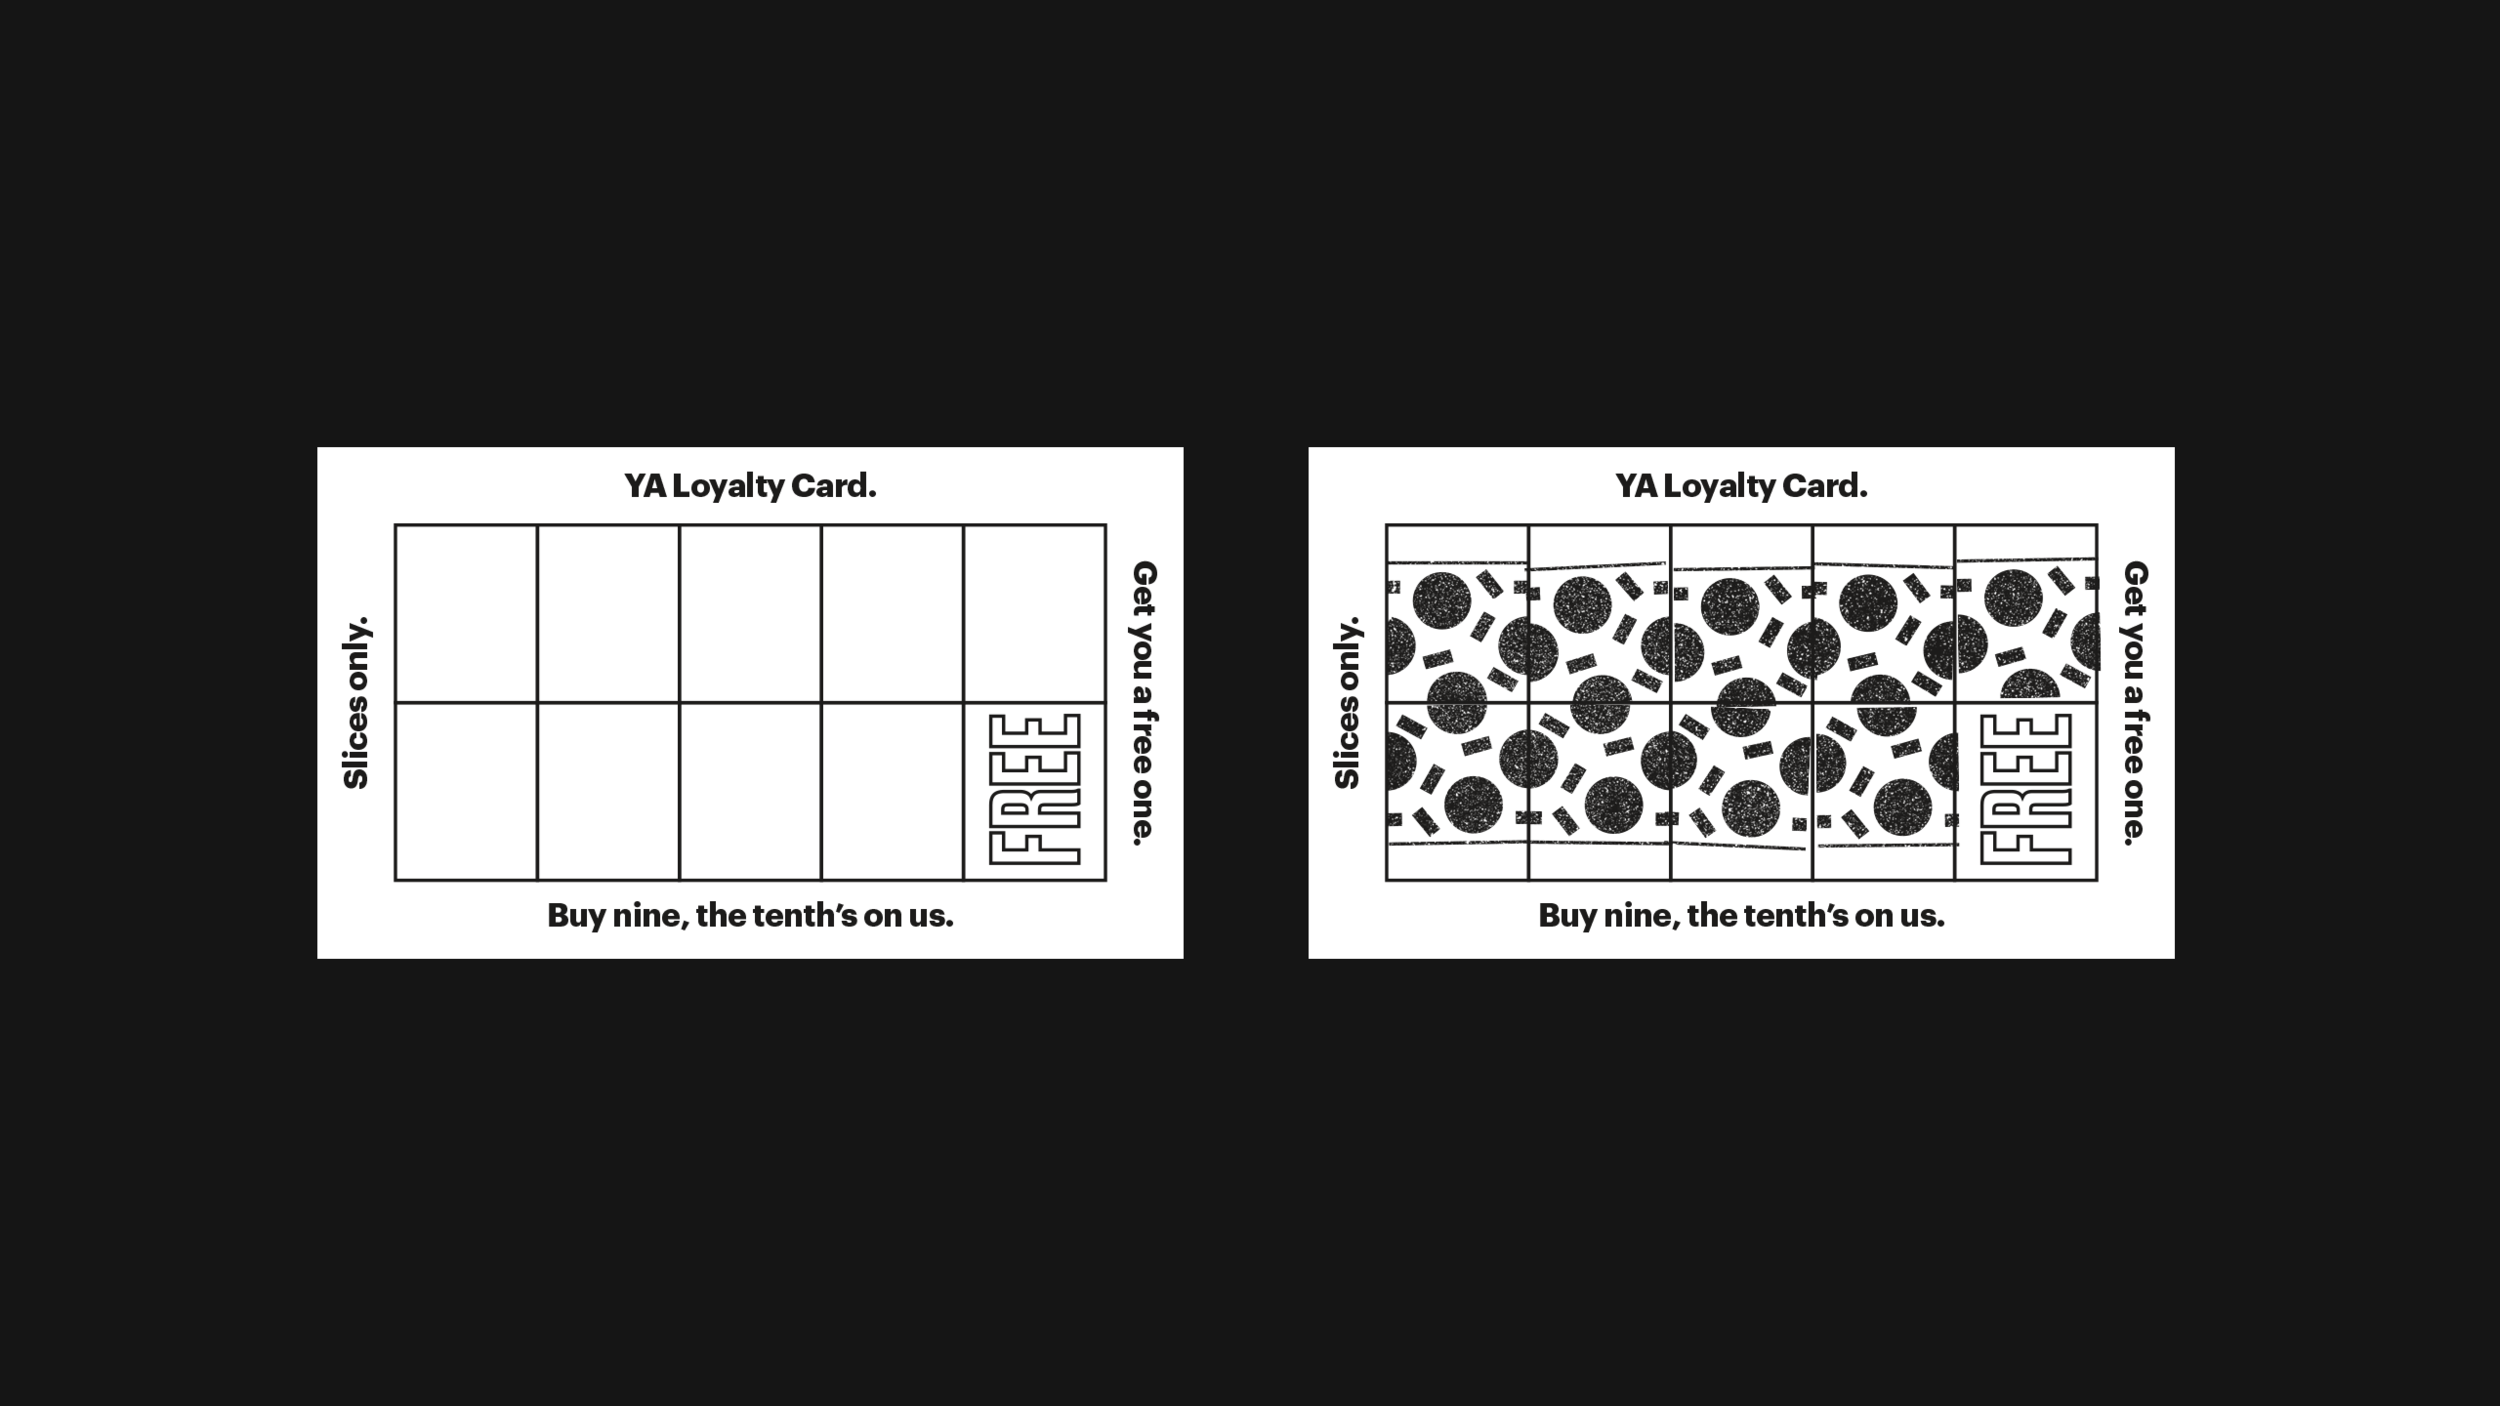 YA loyalty cards blank and filled.